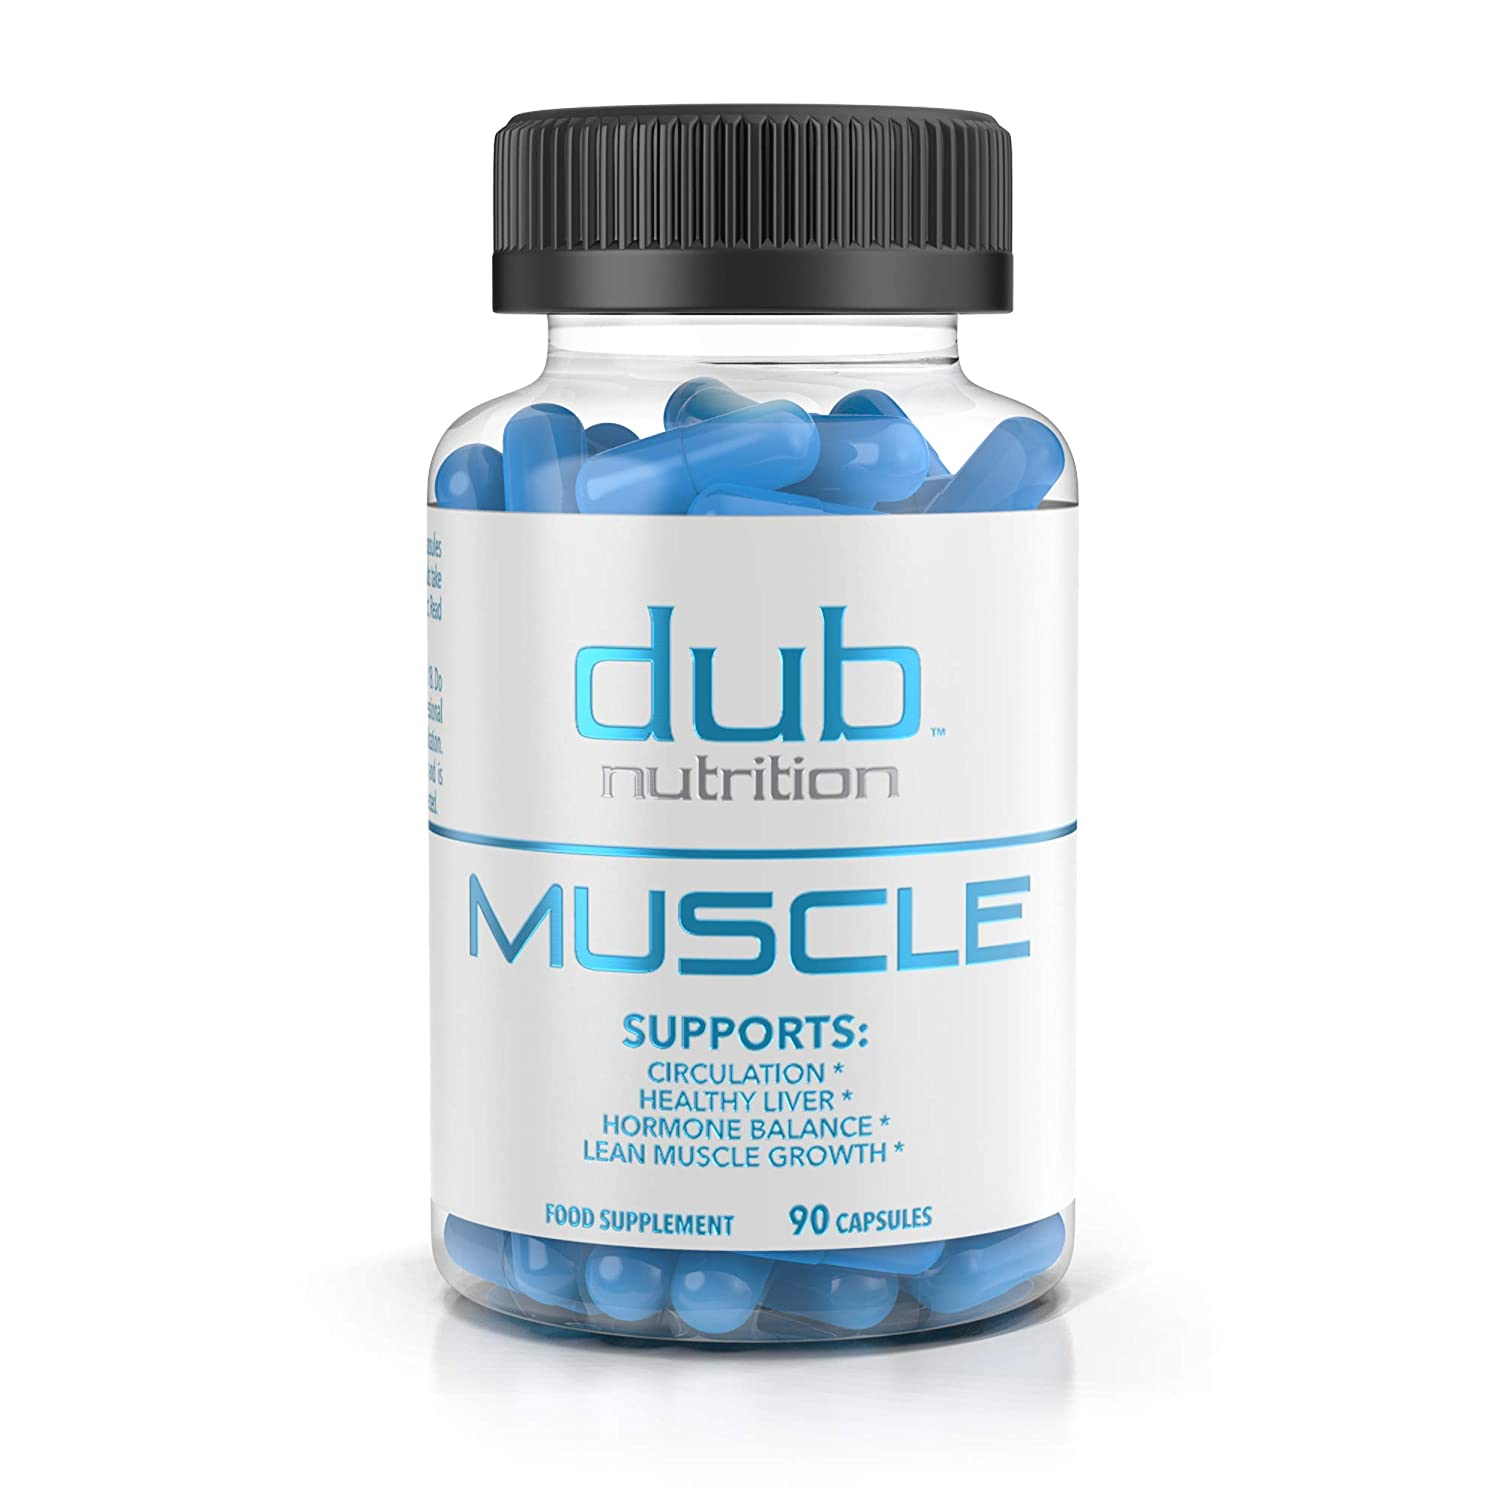 Muscle Recovery Workout Supplements by dub Nutrition Testosterone Booster Liver Cleanse Detox Muscle Builder with BCAA, Milk Thistle, Saw Palmetto, Tribulus, and Beta Alanine 90 Capsules.